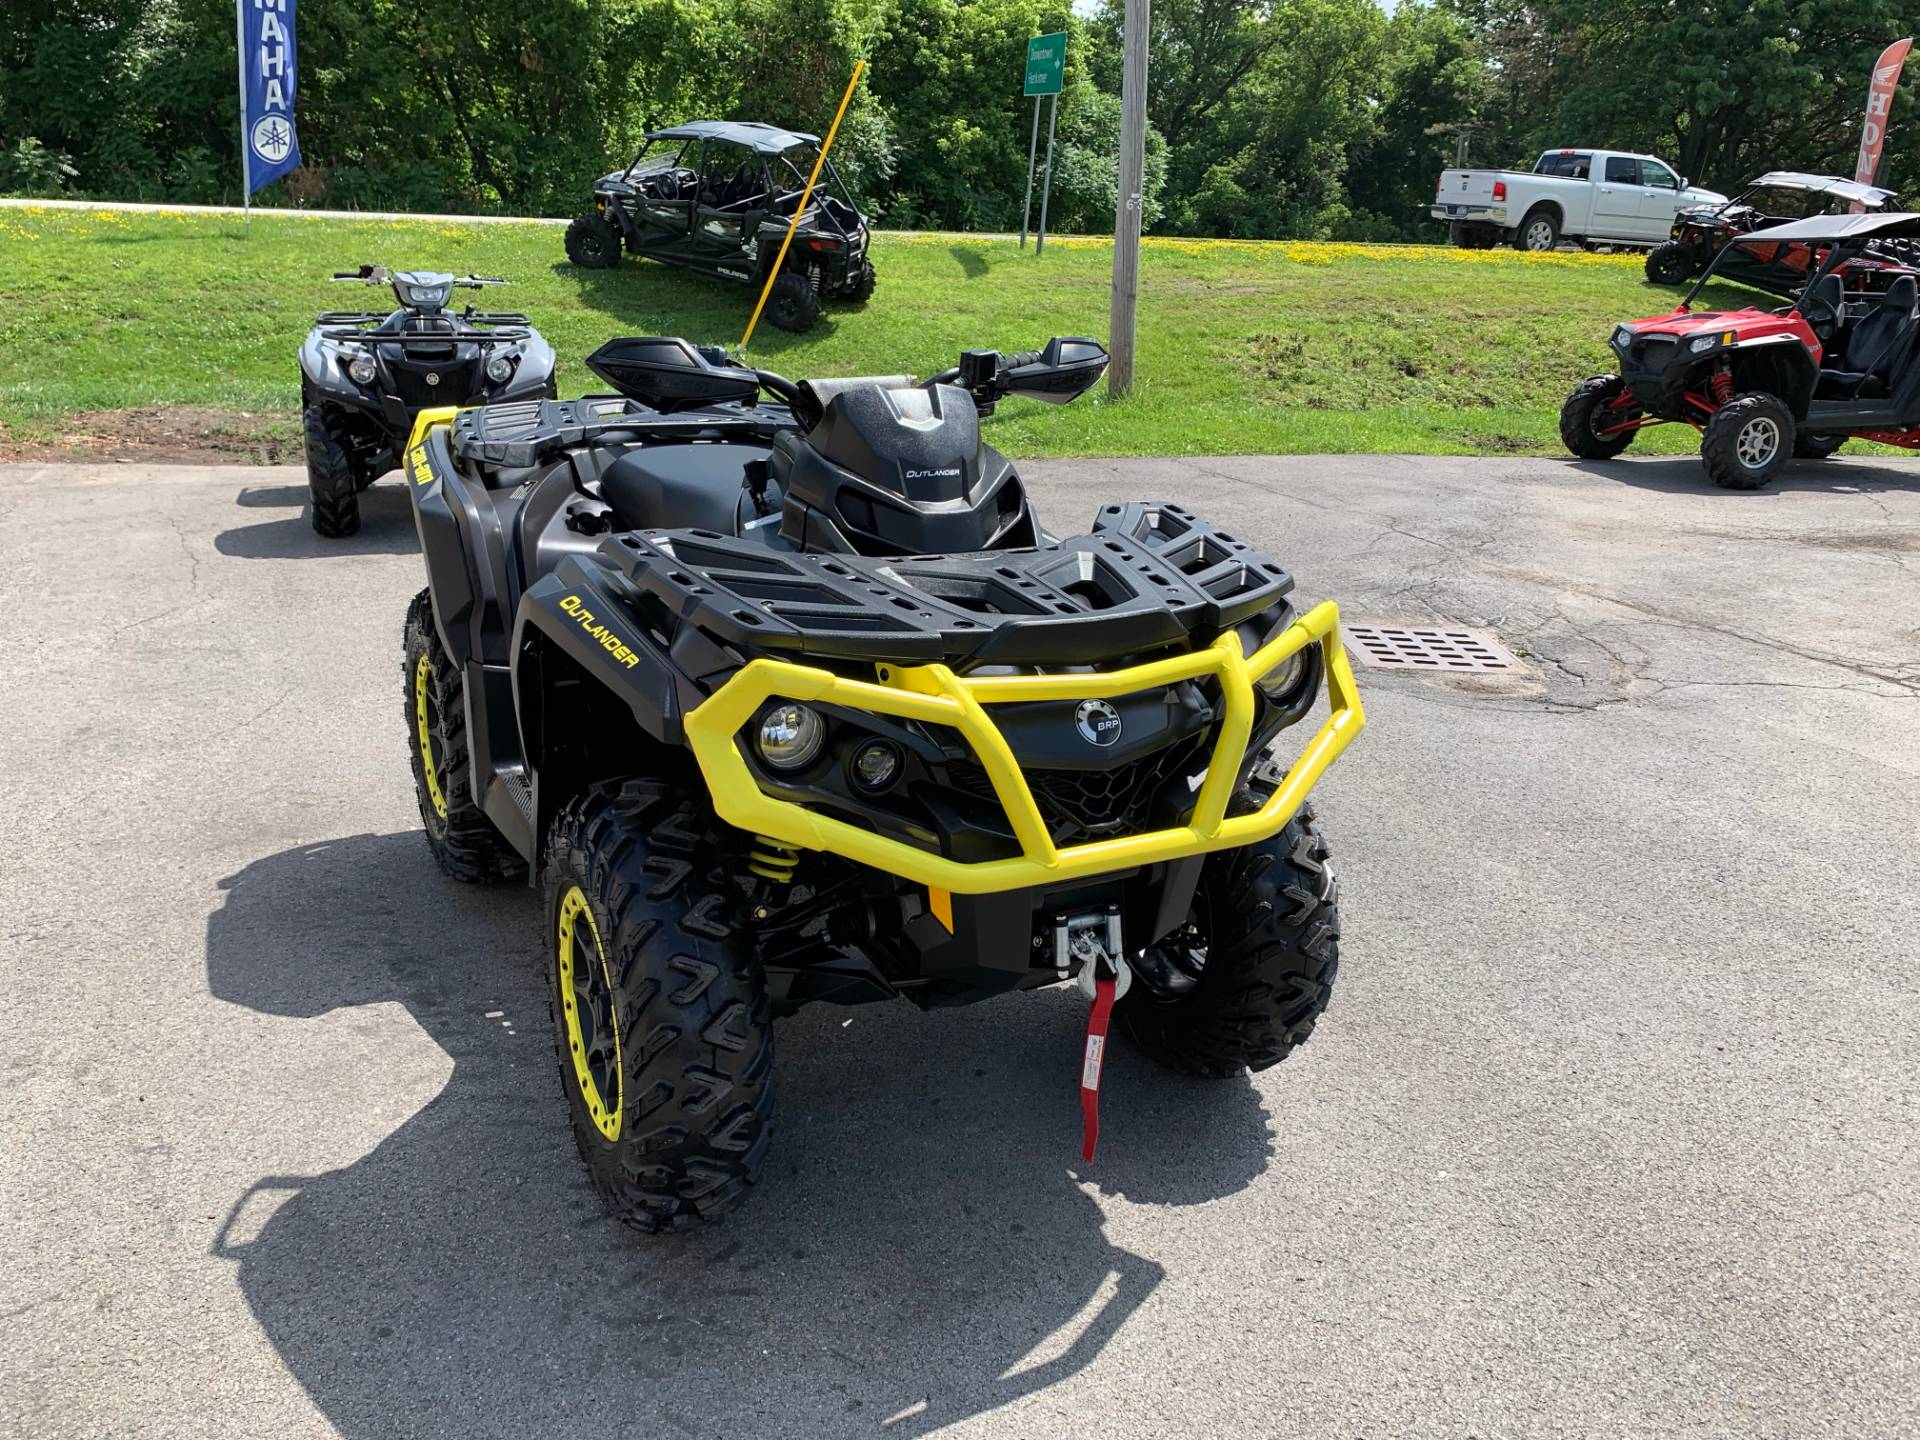 2019 Can-Am Outlander XT-P 850 in Herkimer, New York - Photo 11